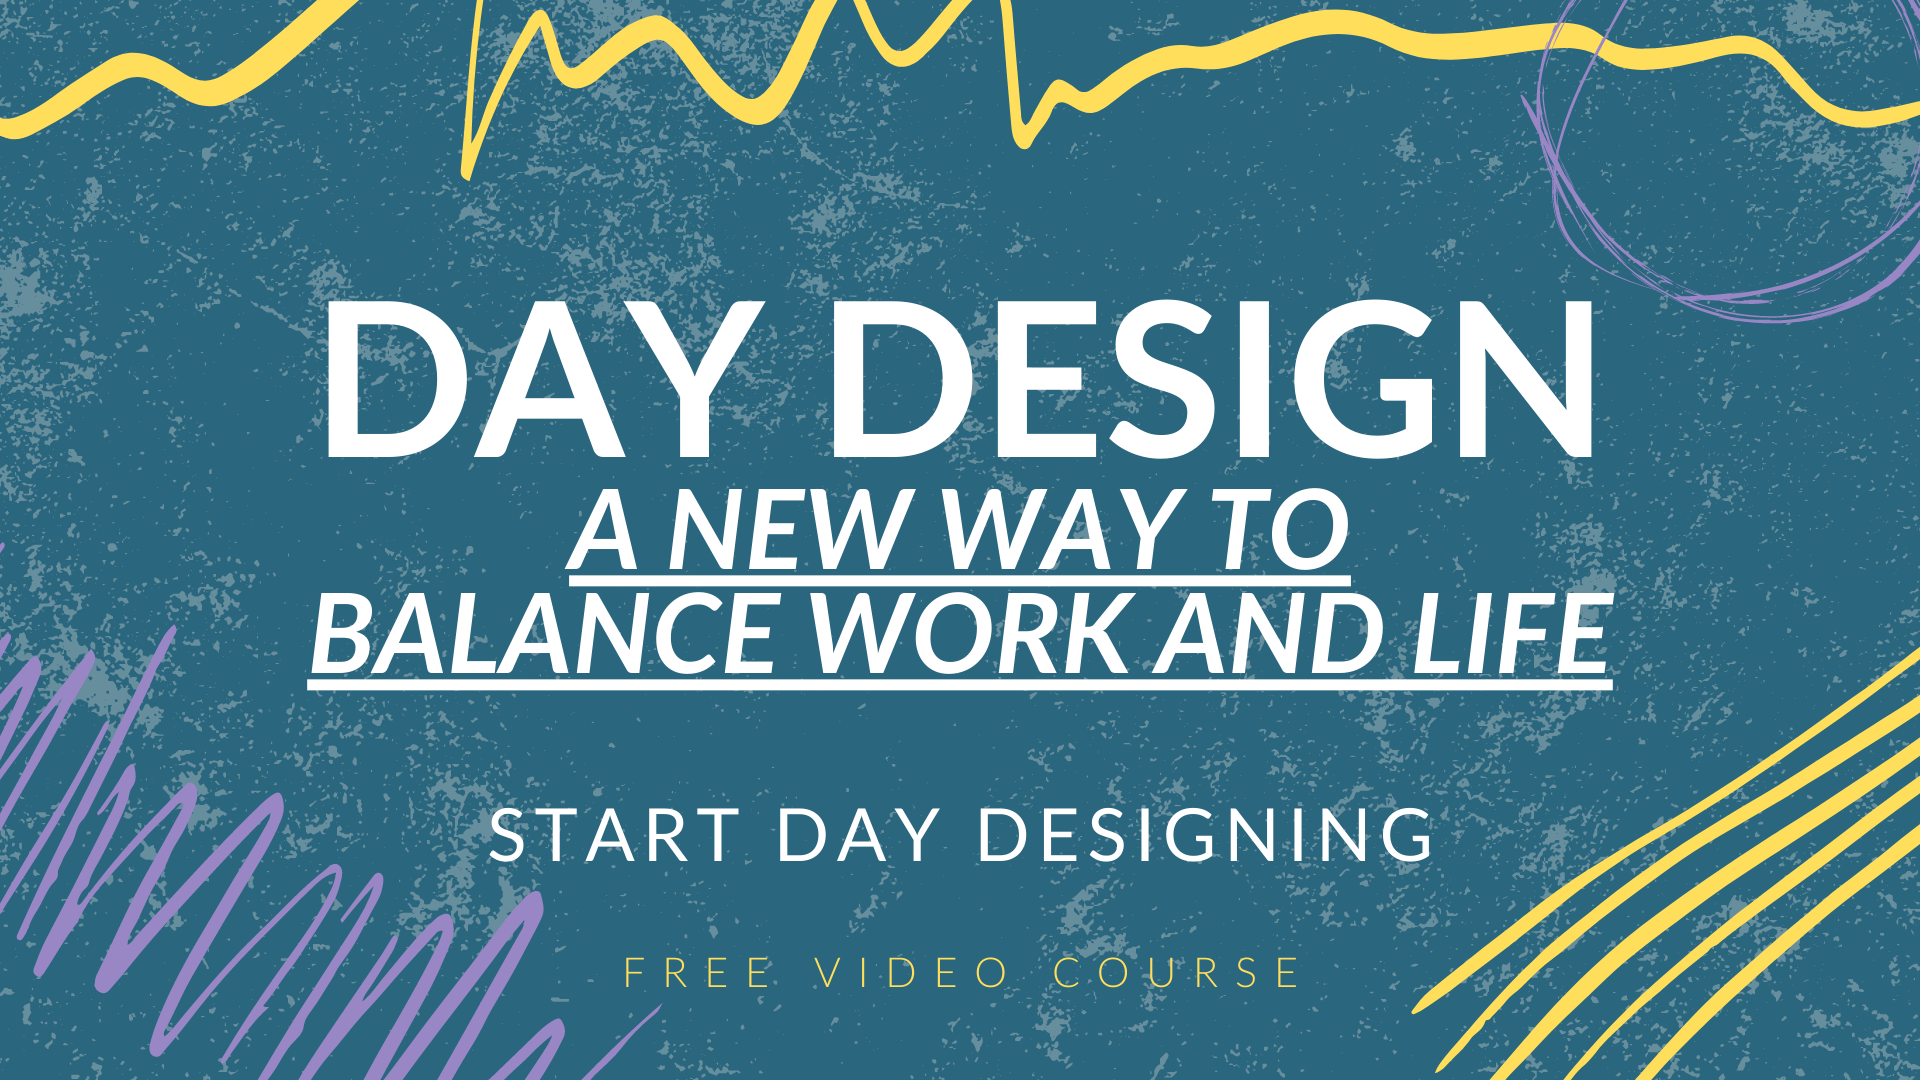 Day Design Free Video Course